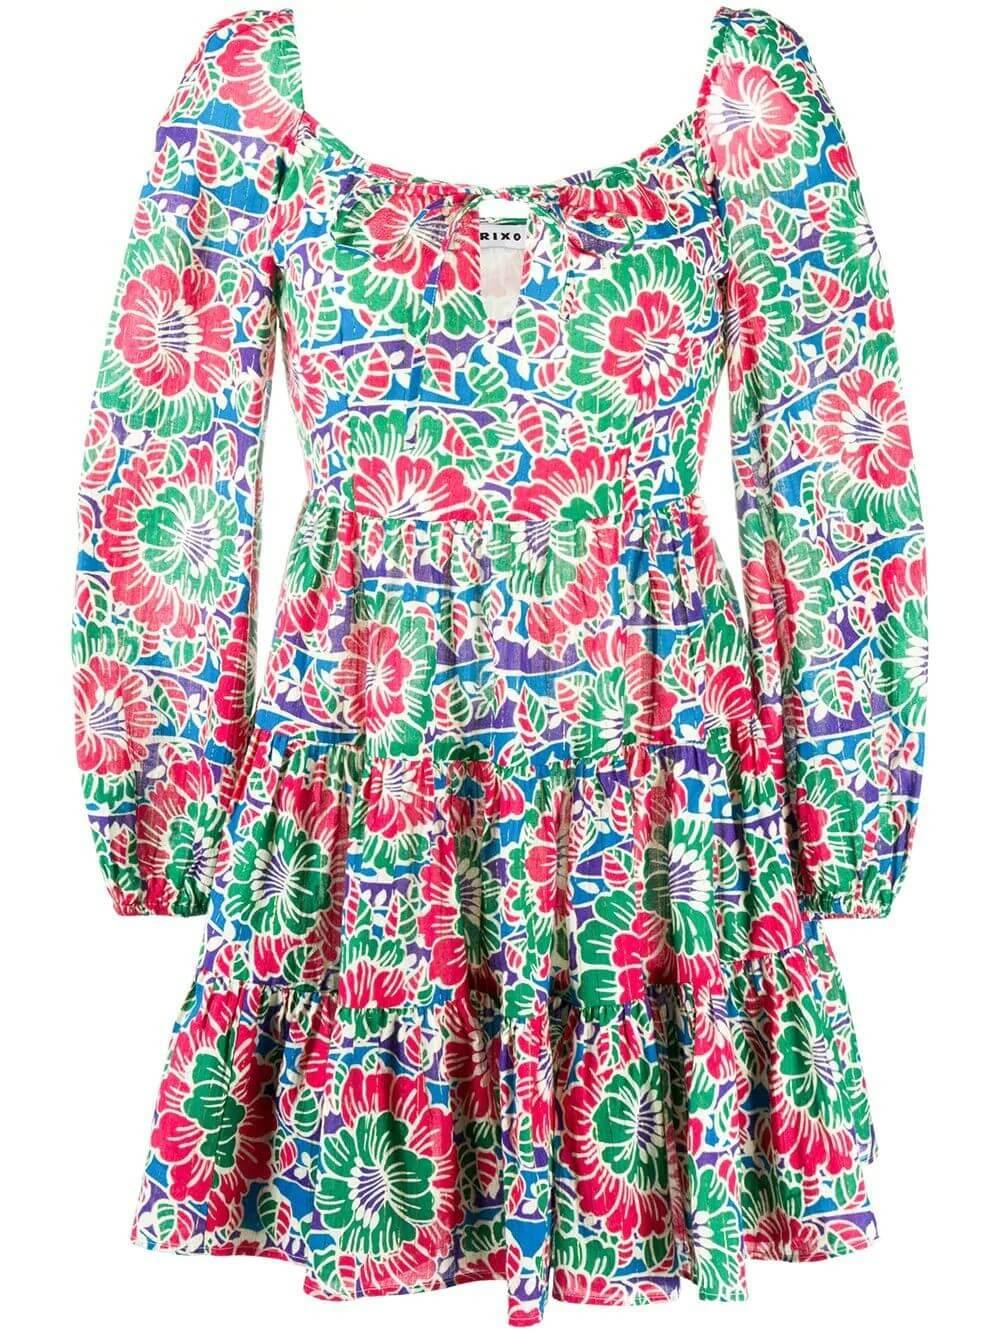 Roxy Floral Mini Dress Item # RIX10-589-320-903